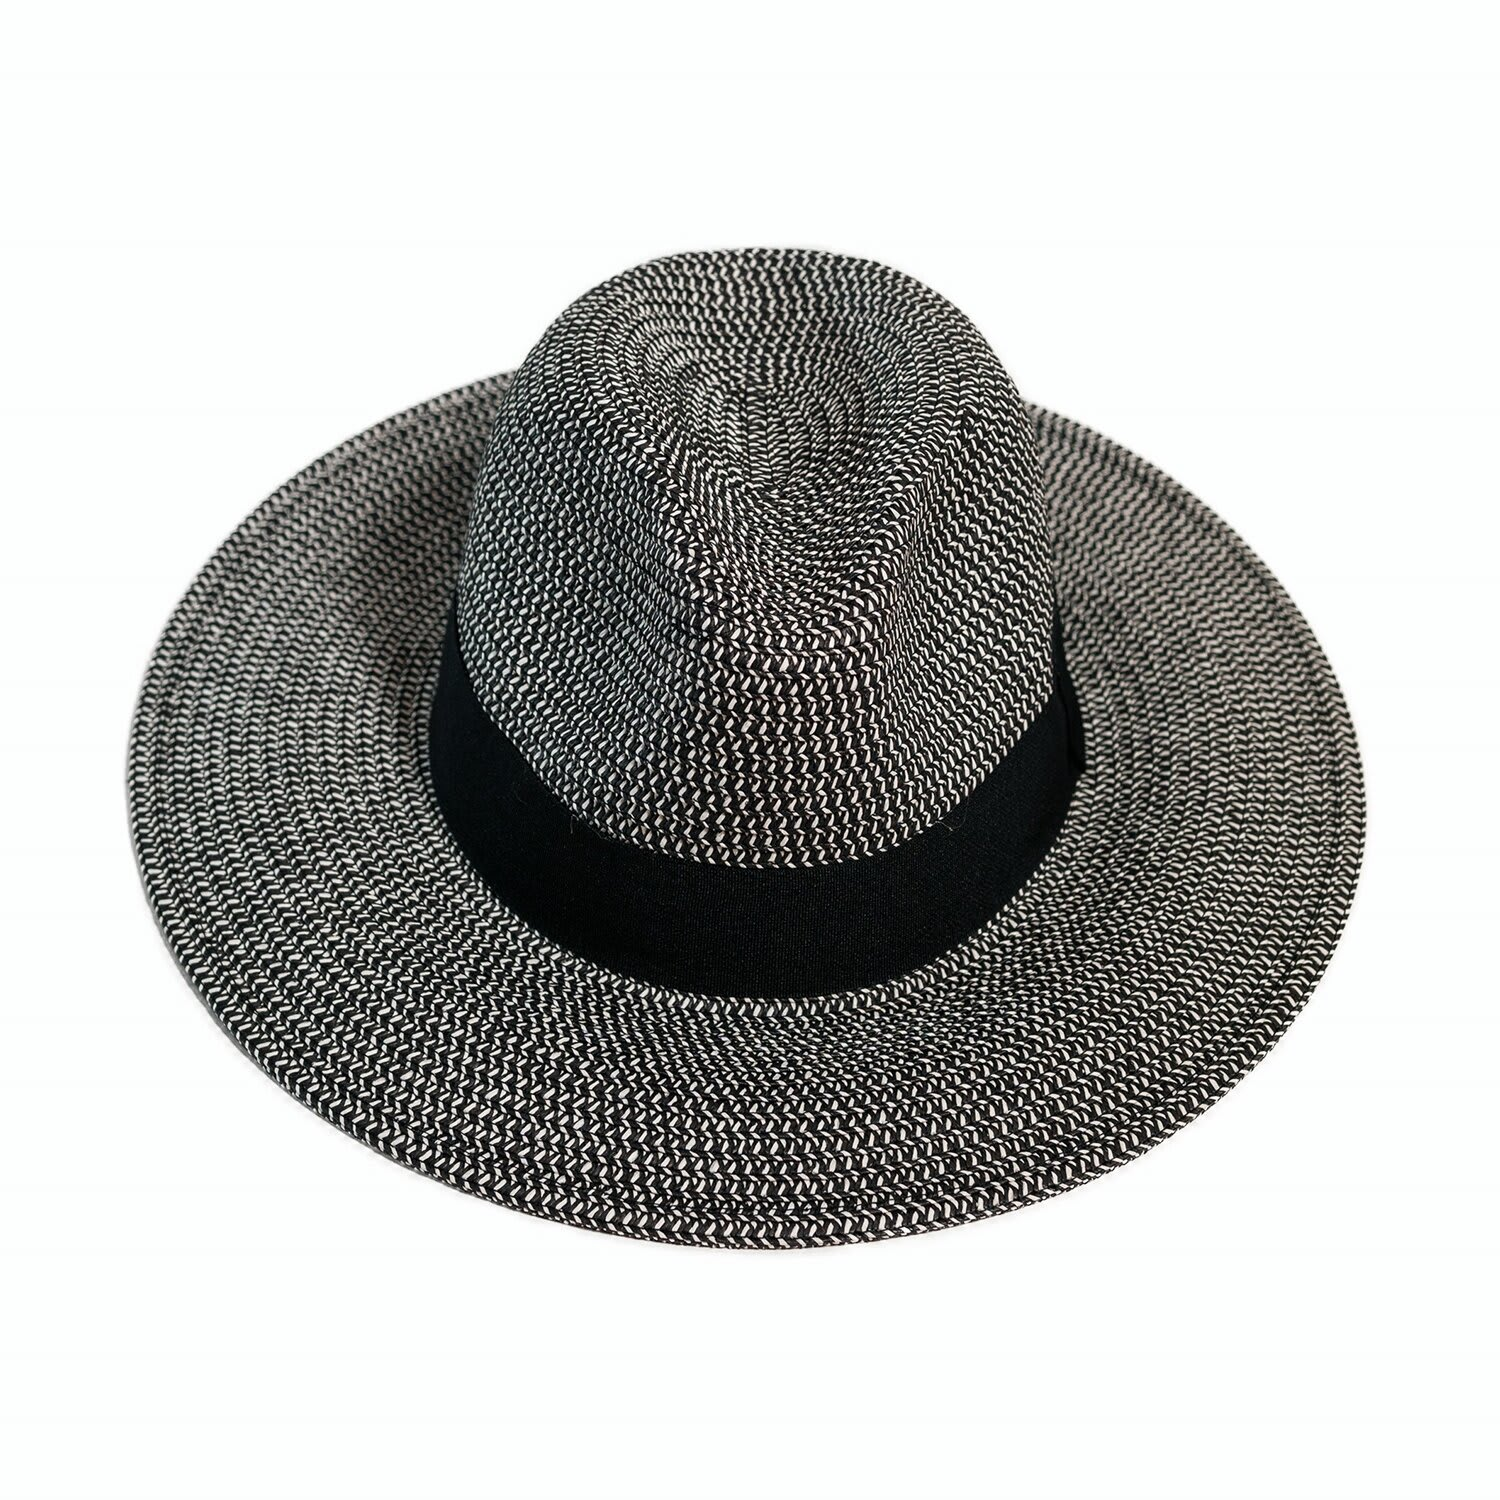 Urban Beach Durban Wide Brim Hat